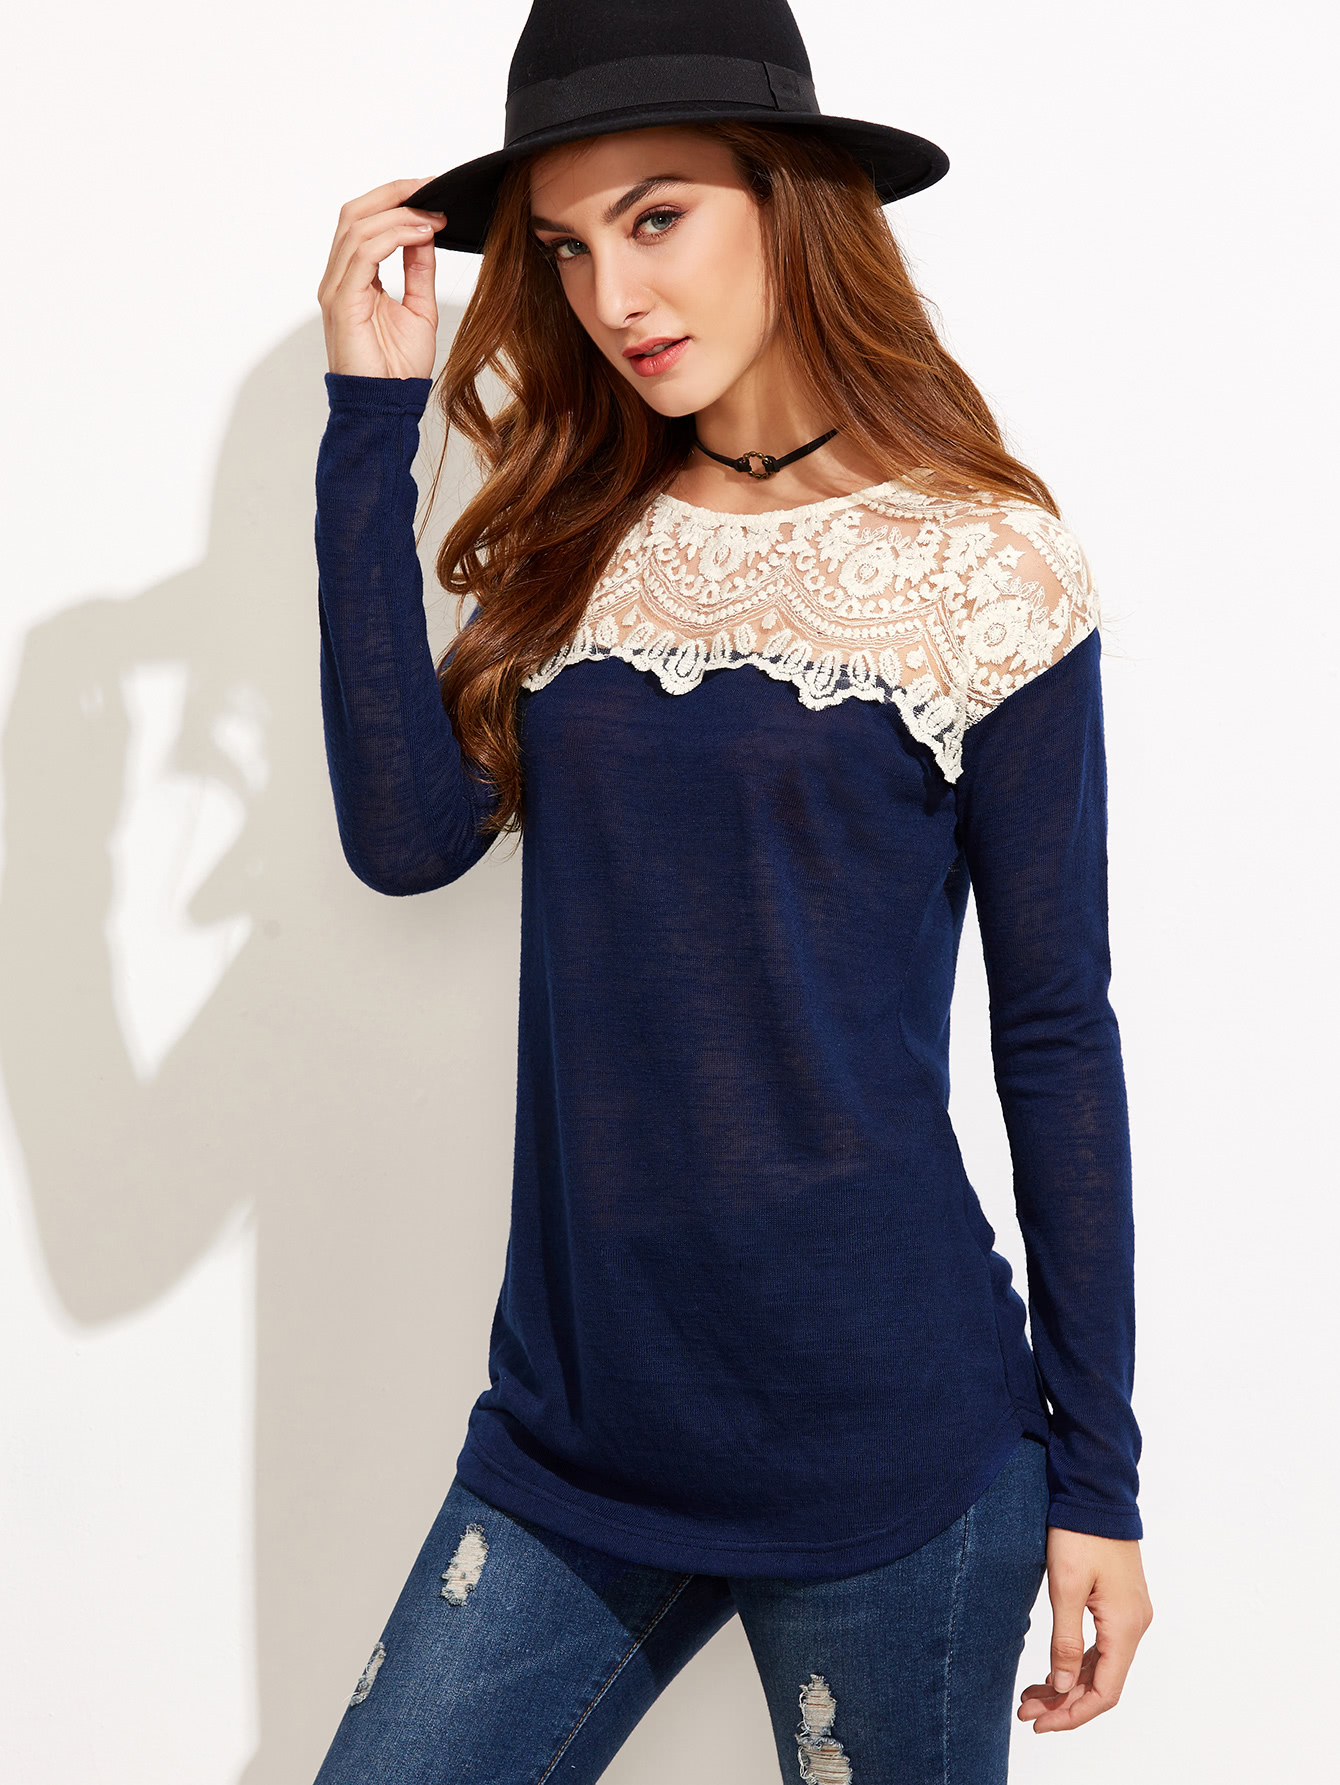 Navy Contrast Embroidered Mesh Neck T-shirtNavy Contrast Embroidered Mesh Neck T-shirt<br><br>color: Navy<br>size: L,M,S,XS